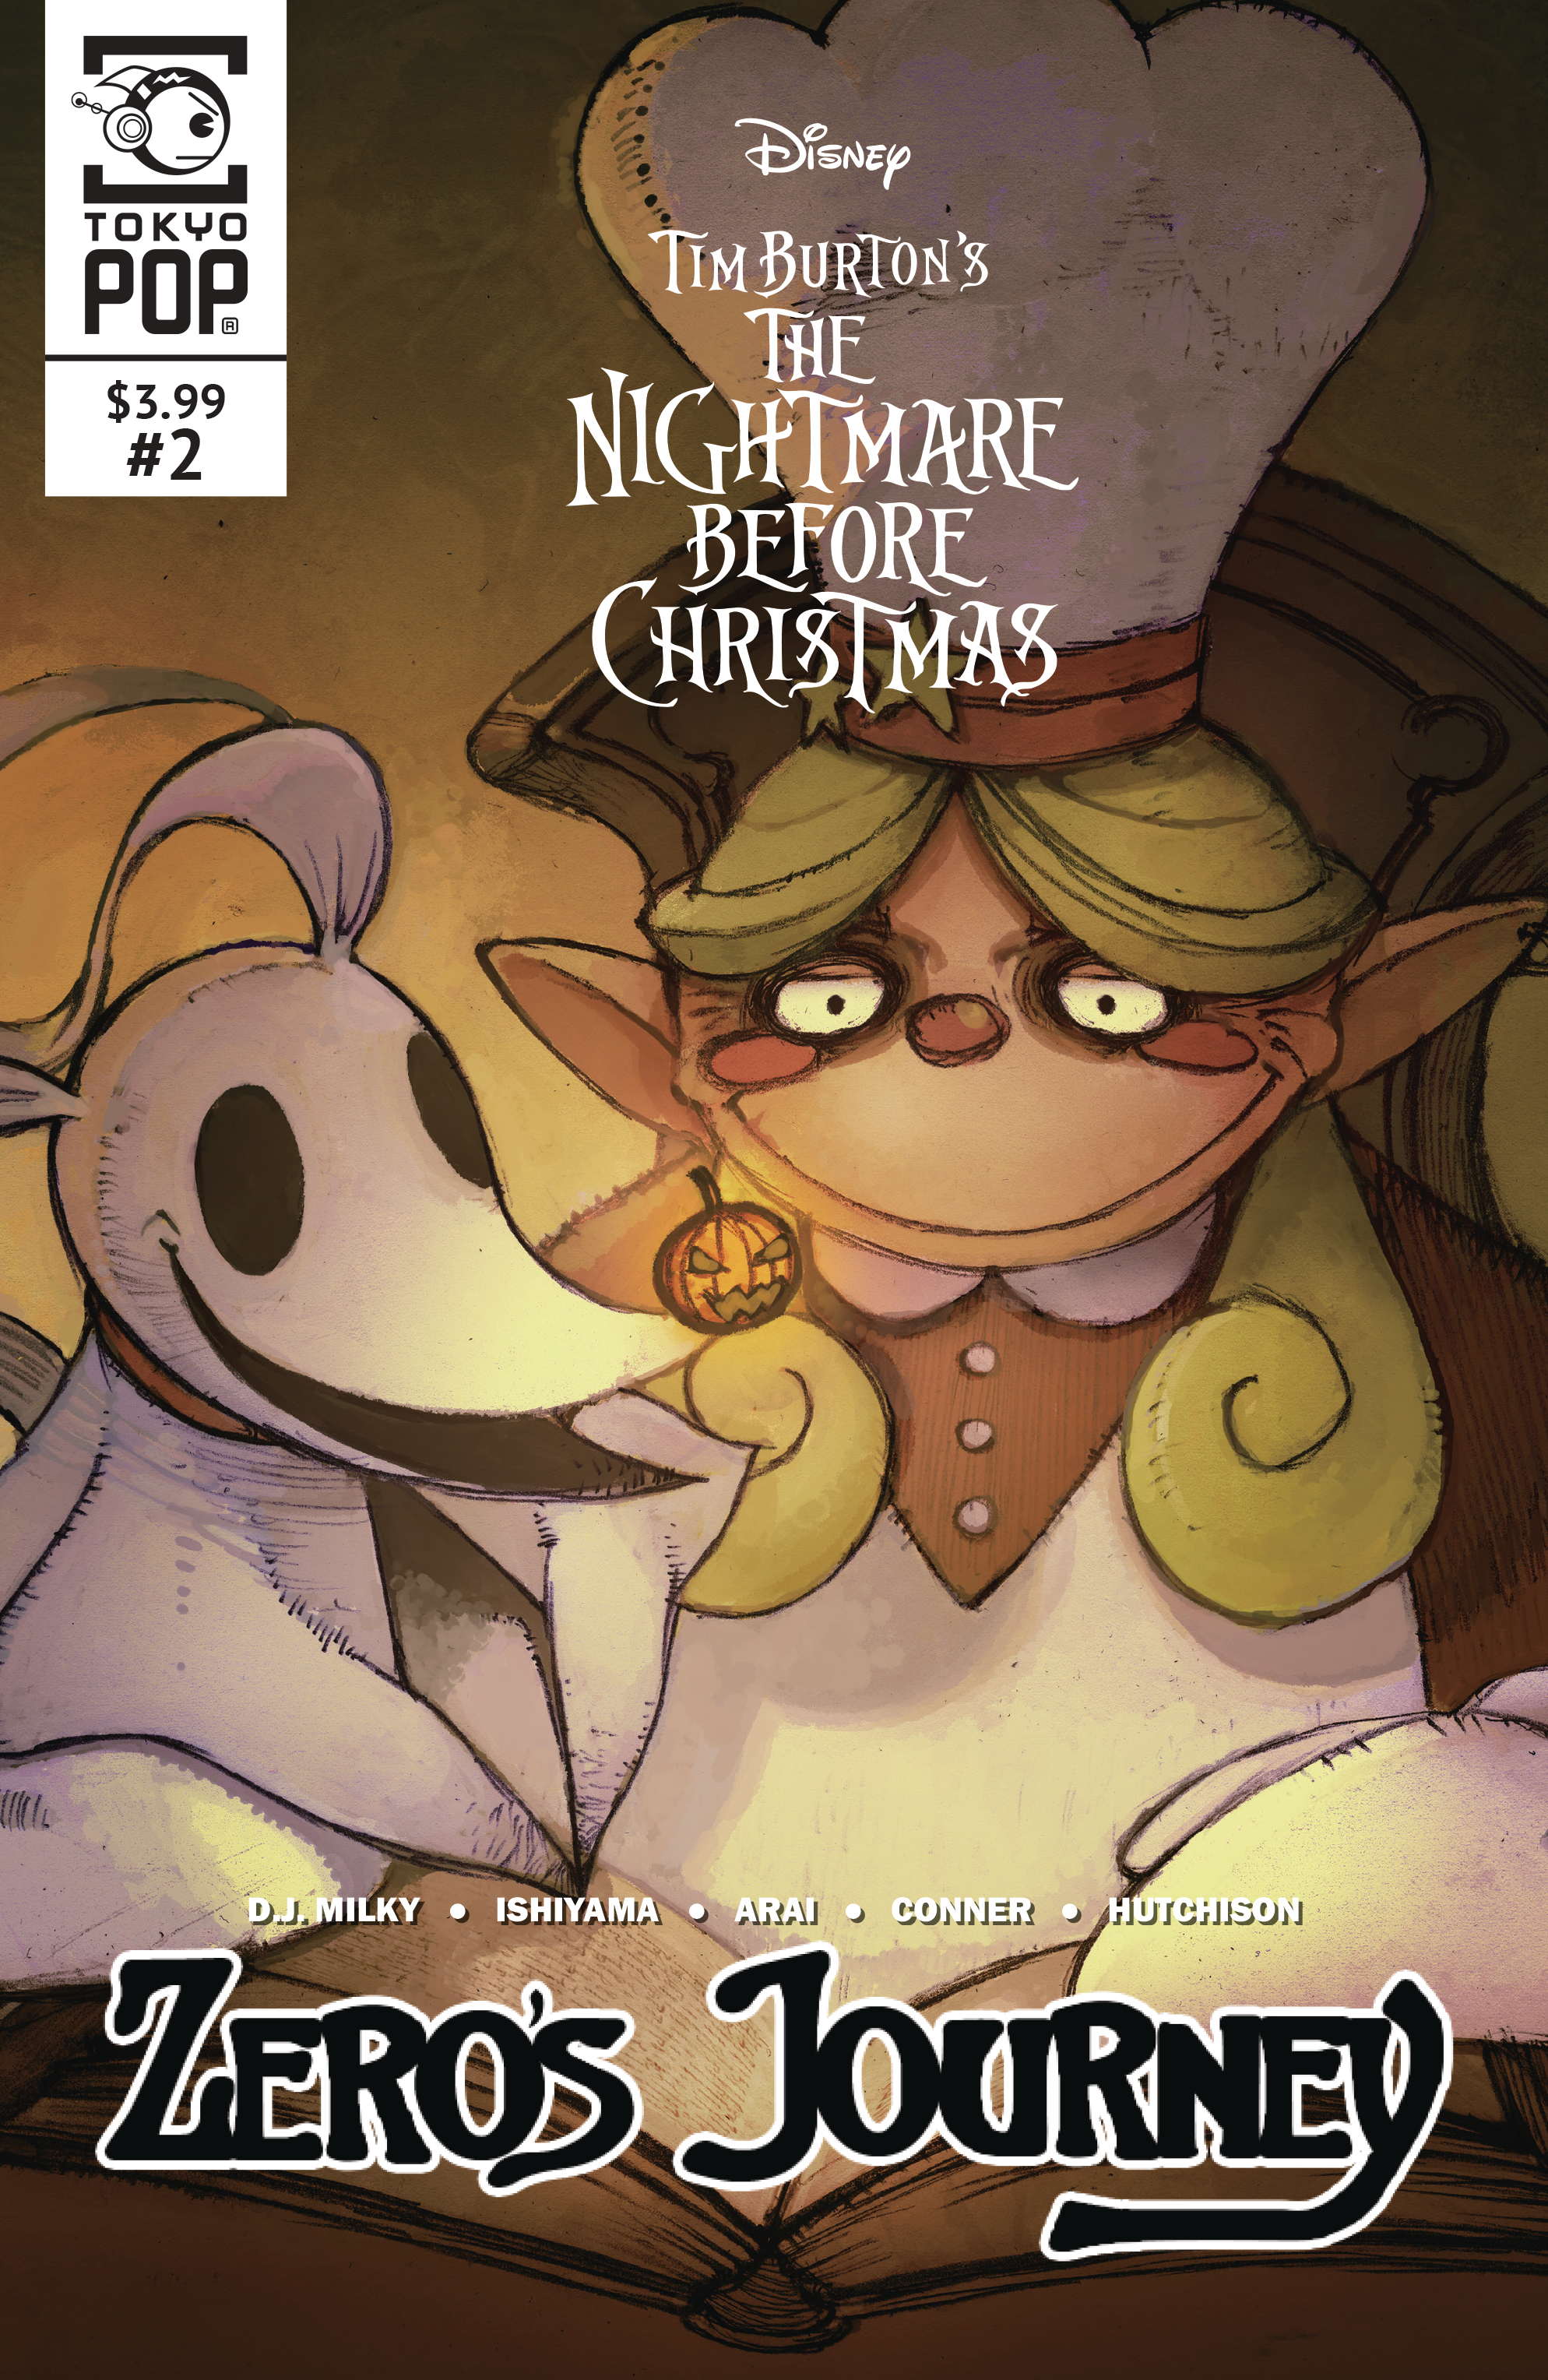 NIGHTMARE BEFORE CHRISTMAS ZEROS JOURNEY #2